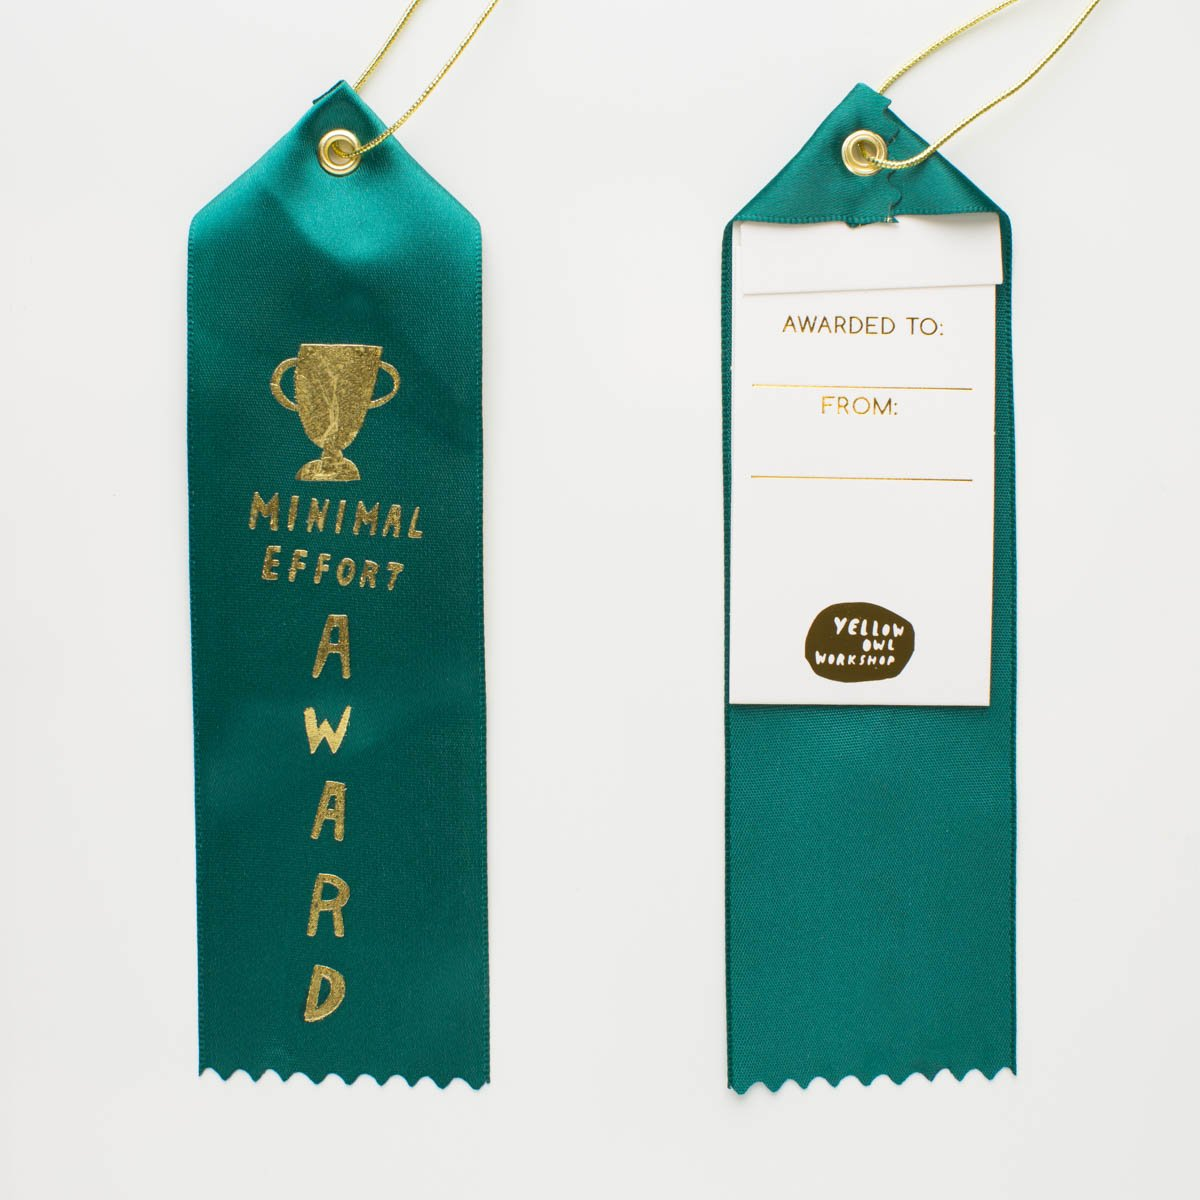 Minimal Effort - Award Ribbon Card